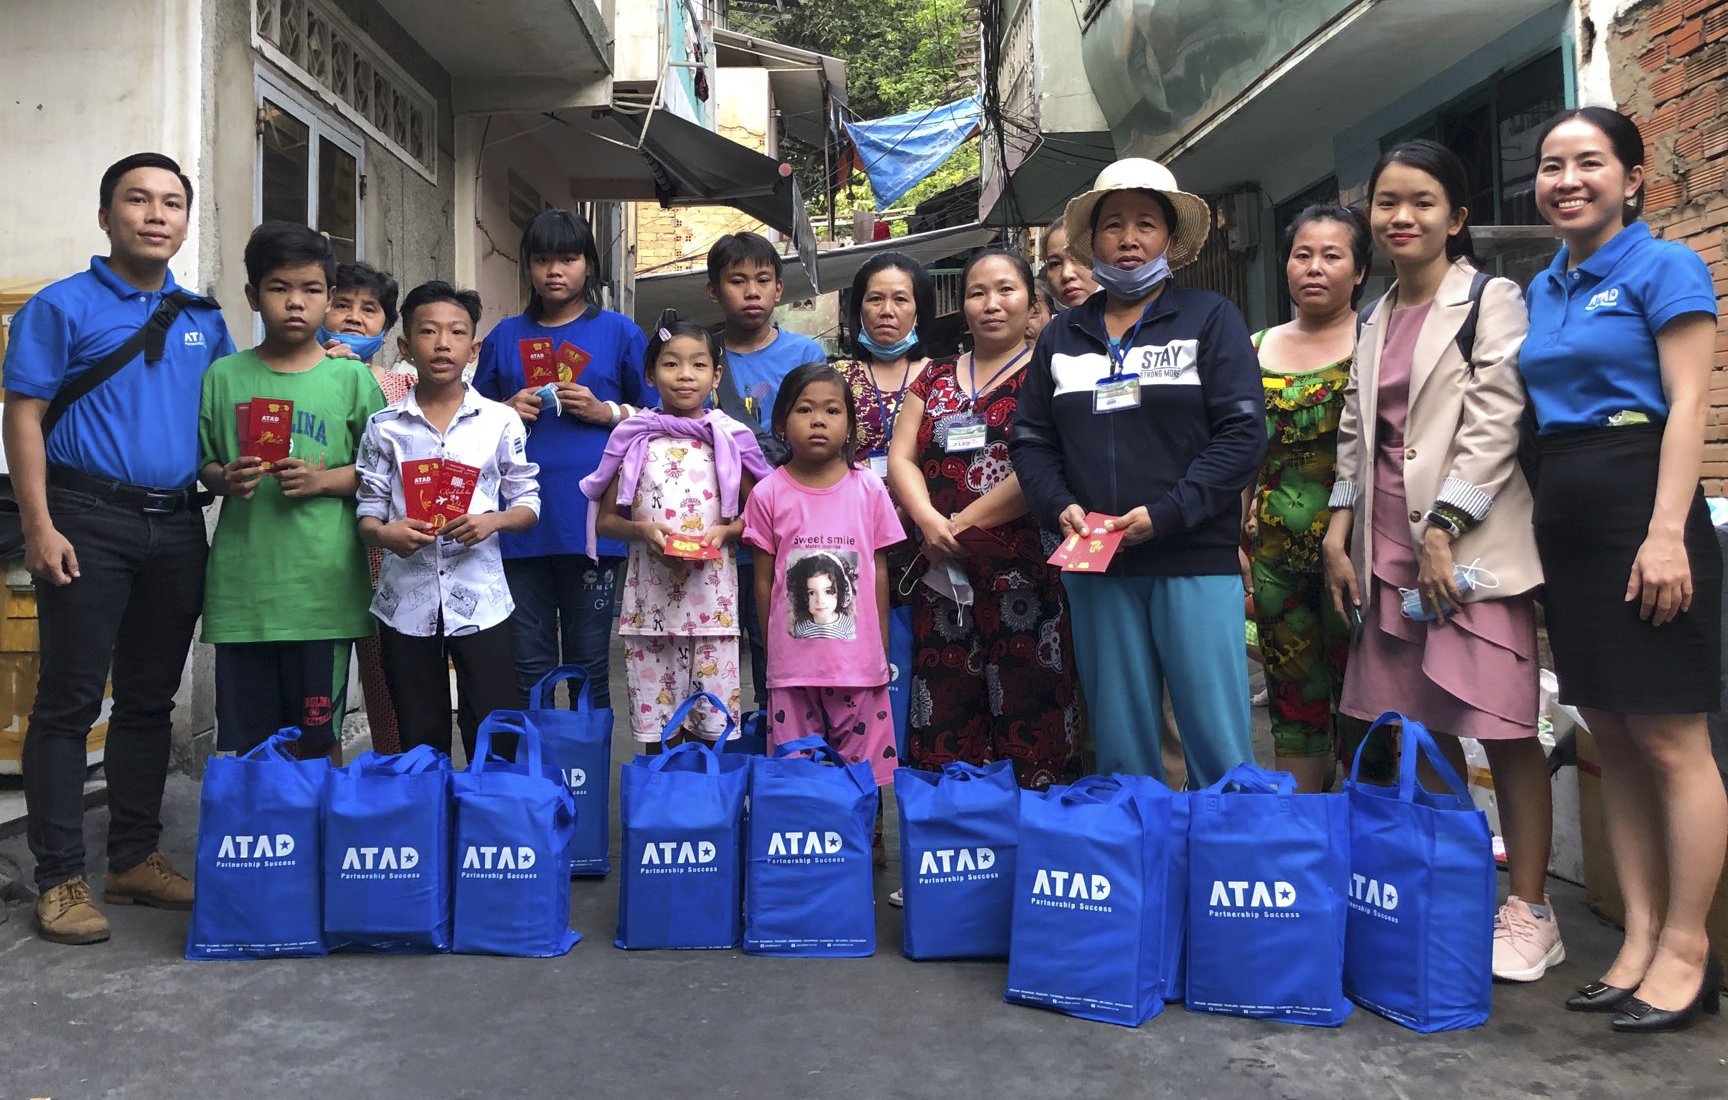 ATAD shares with children on dialysis